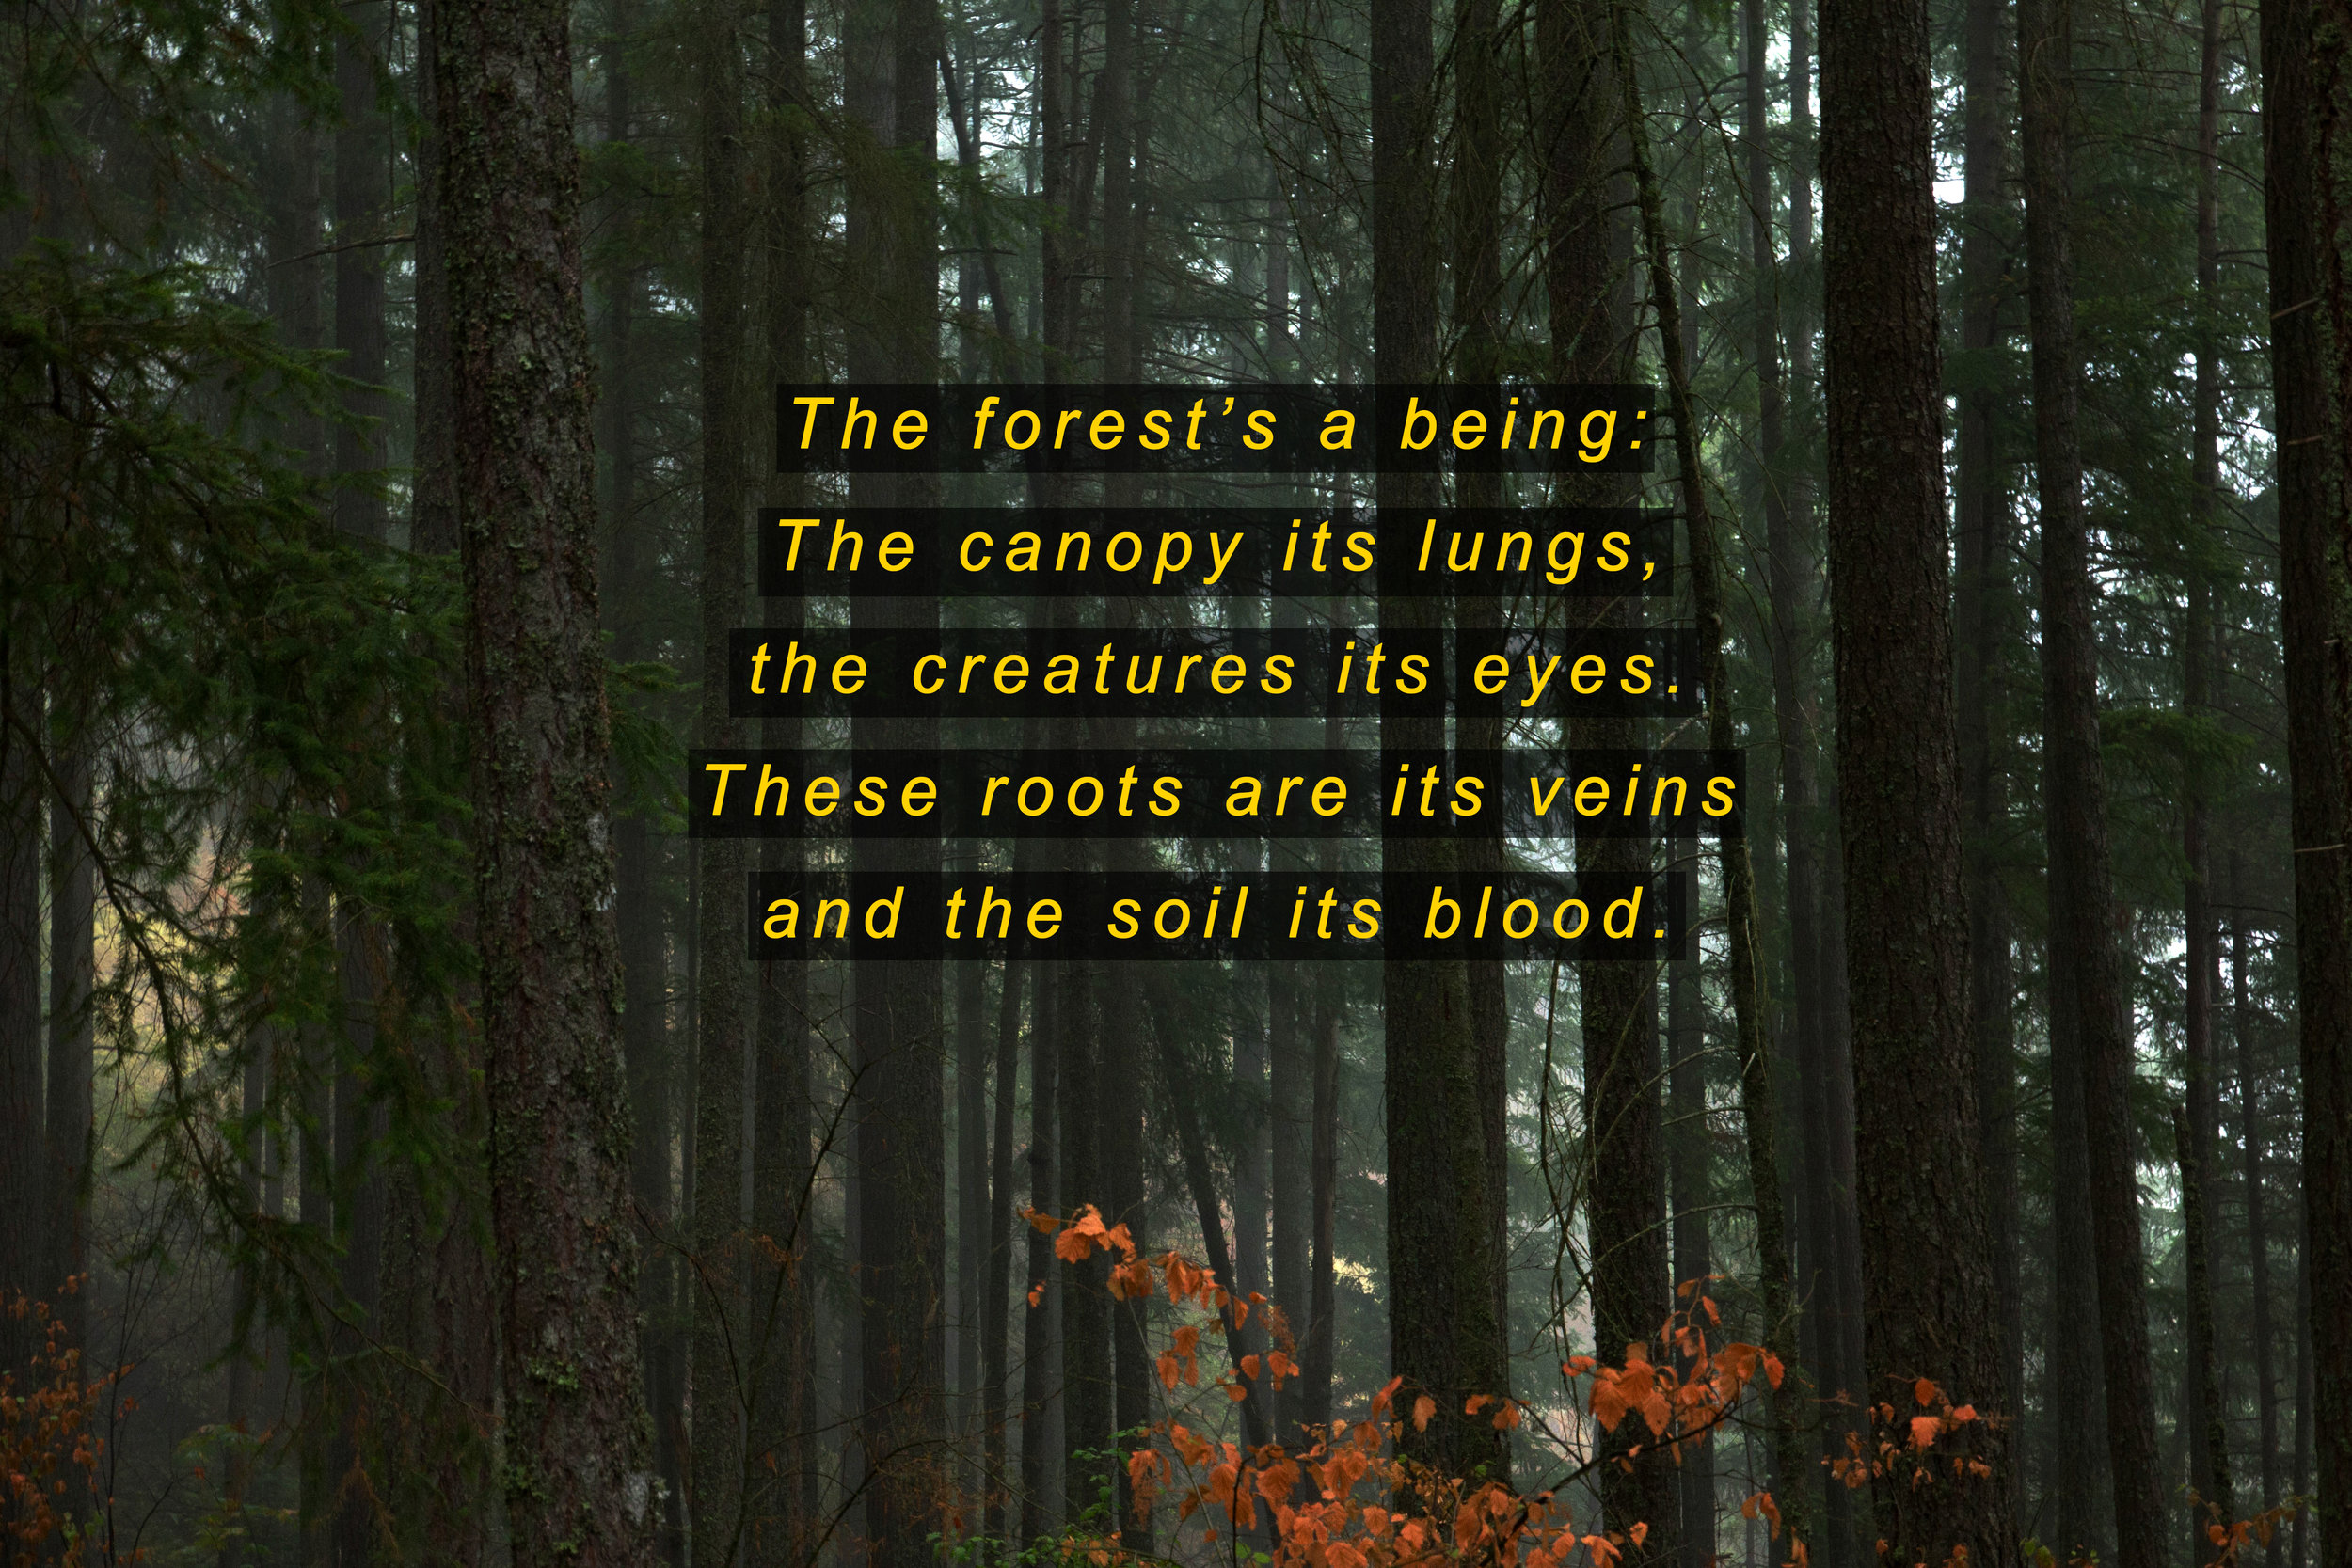 Forests a being.jpg